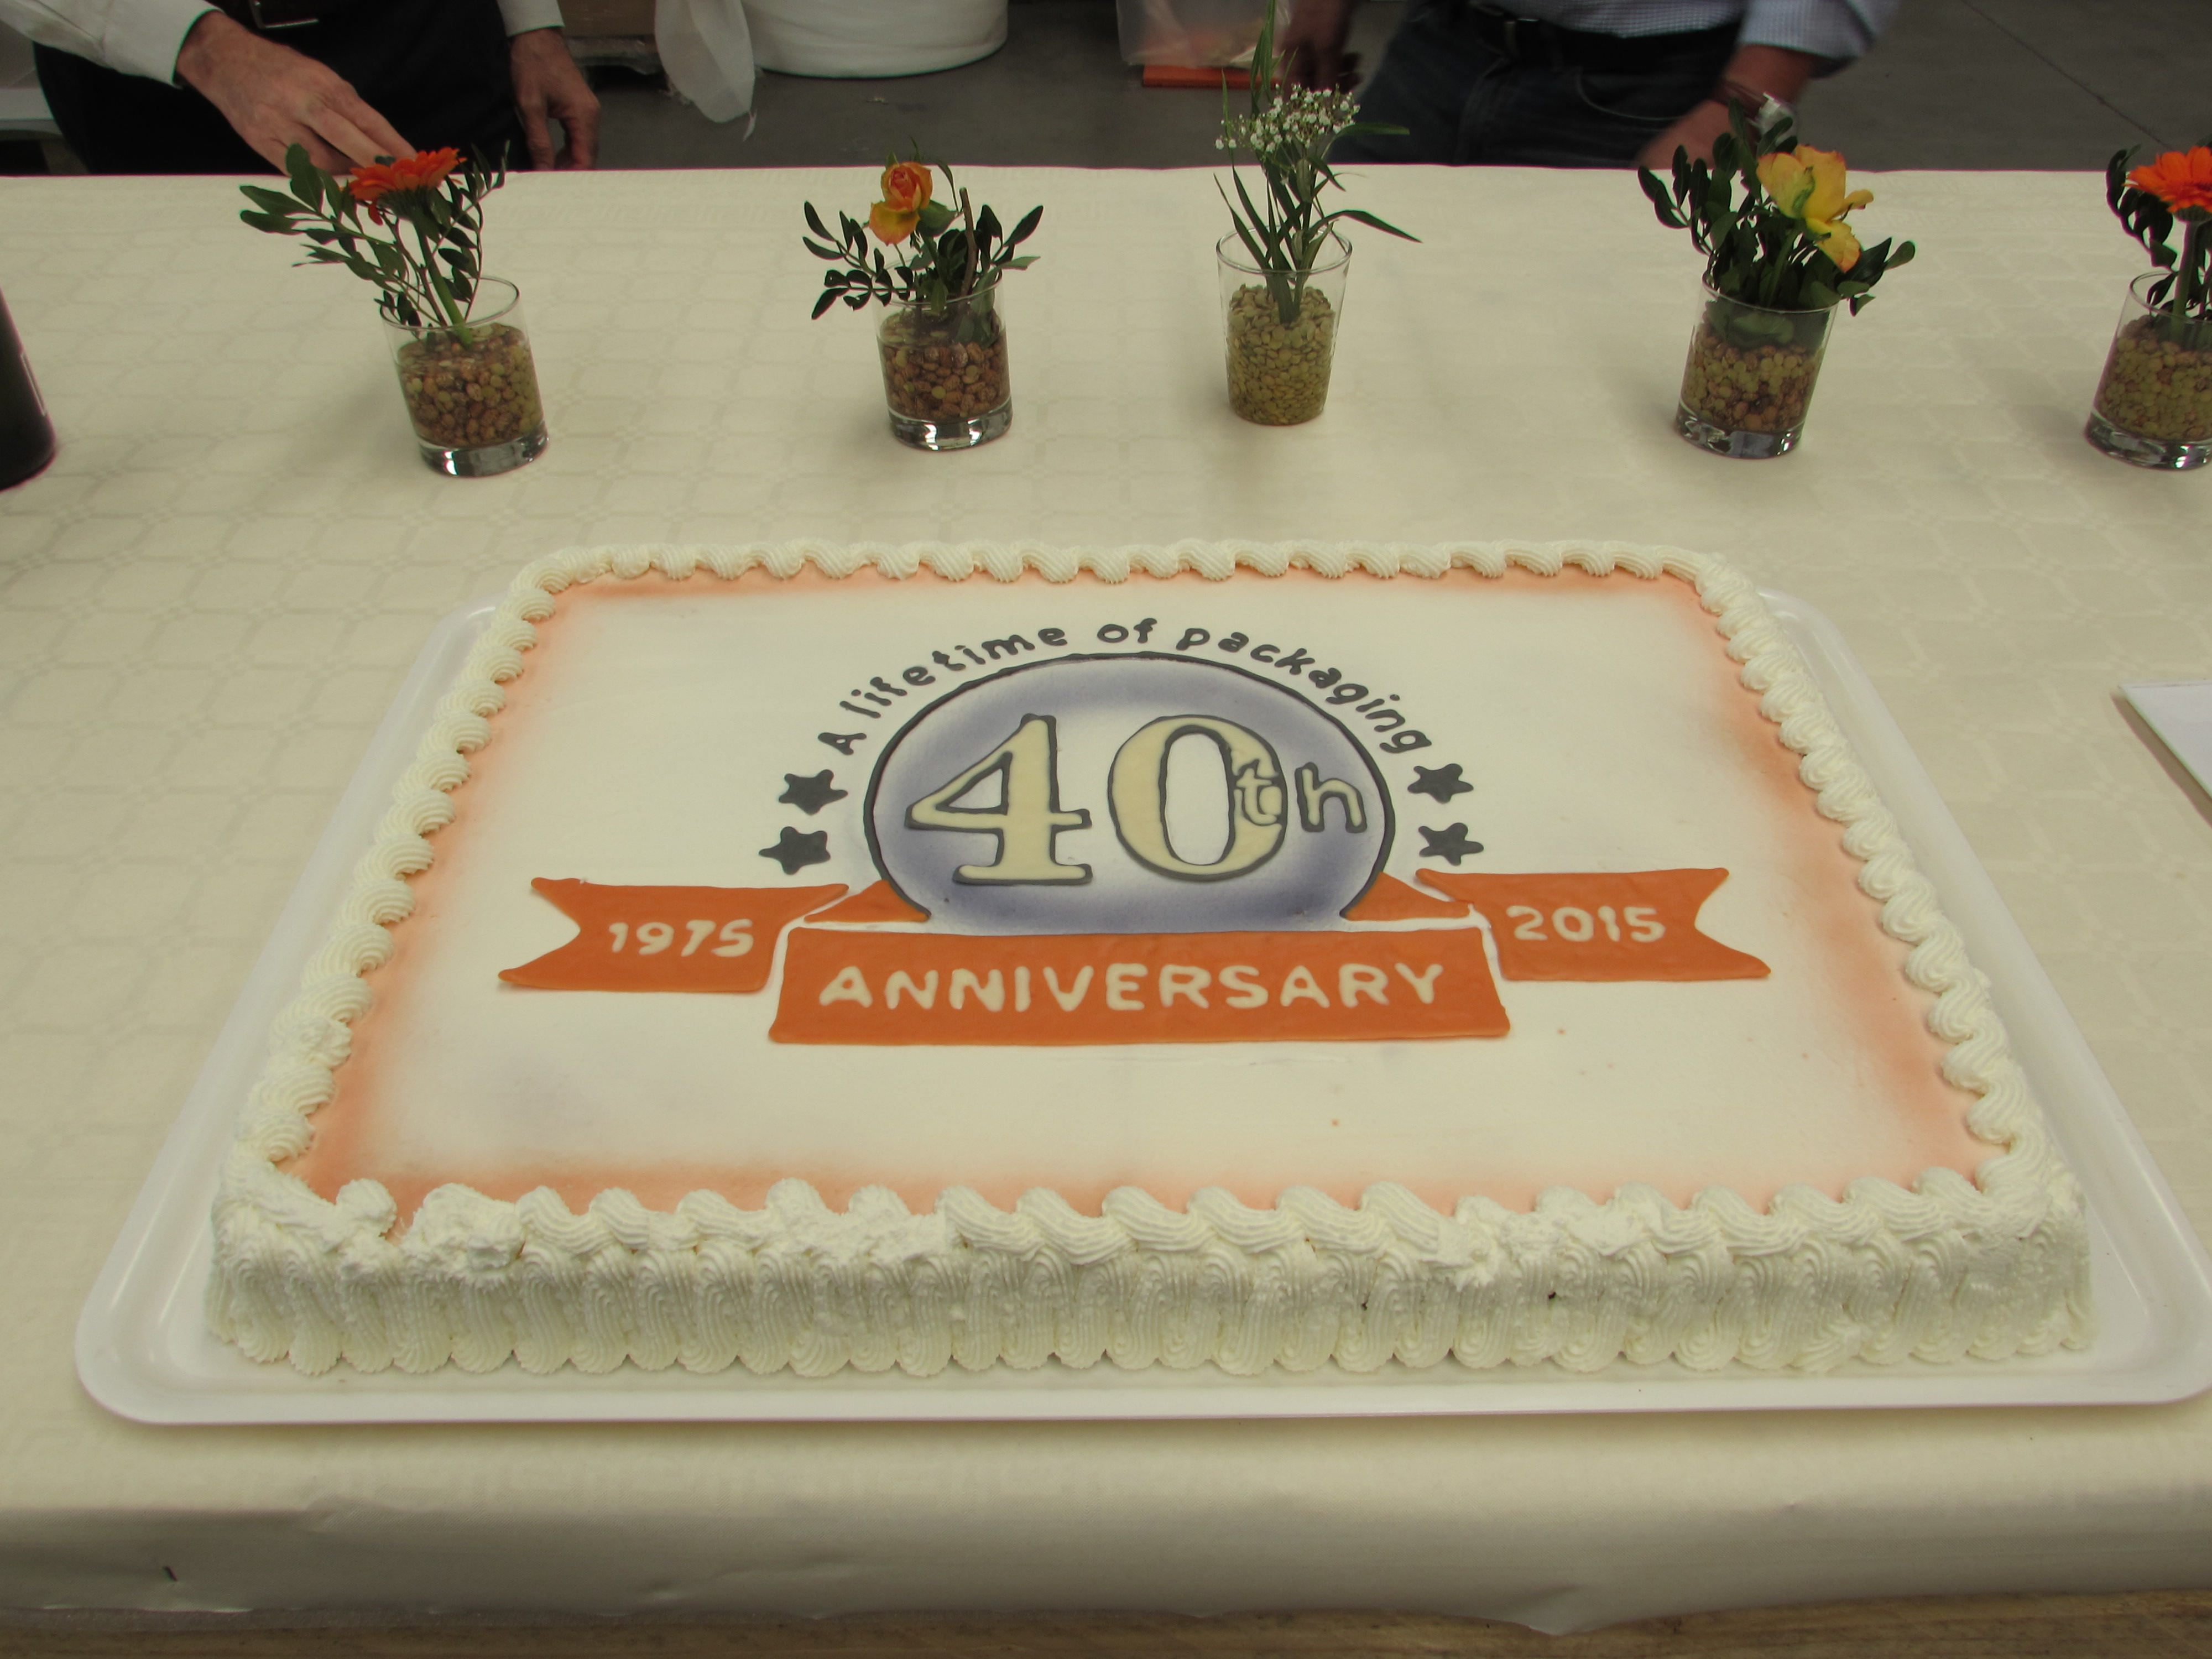 Top Management celebrated 40 years of activity, together with all employees